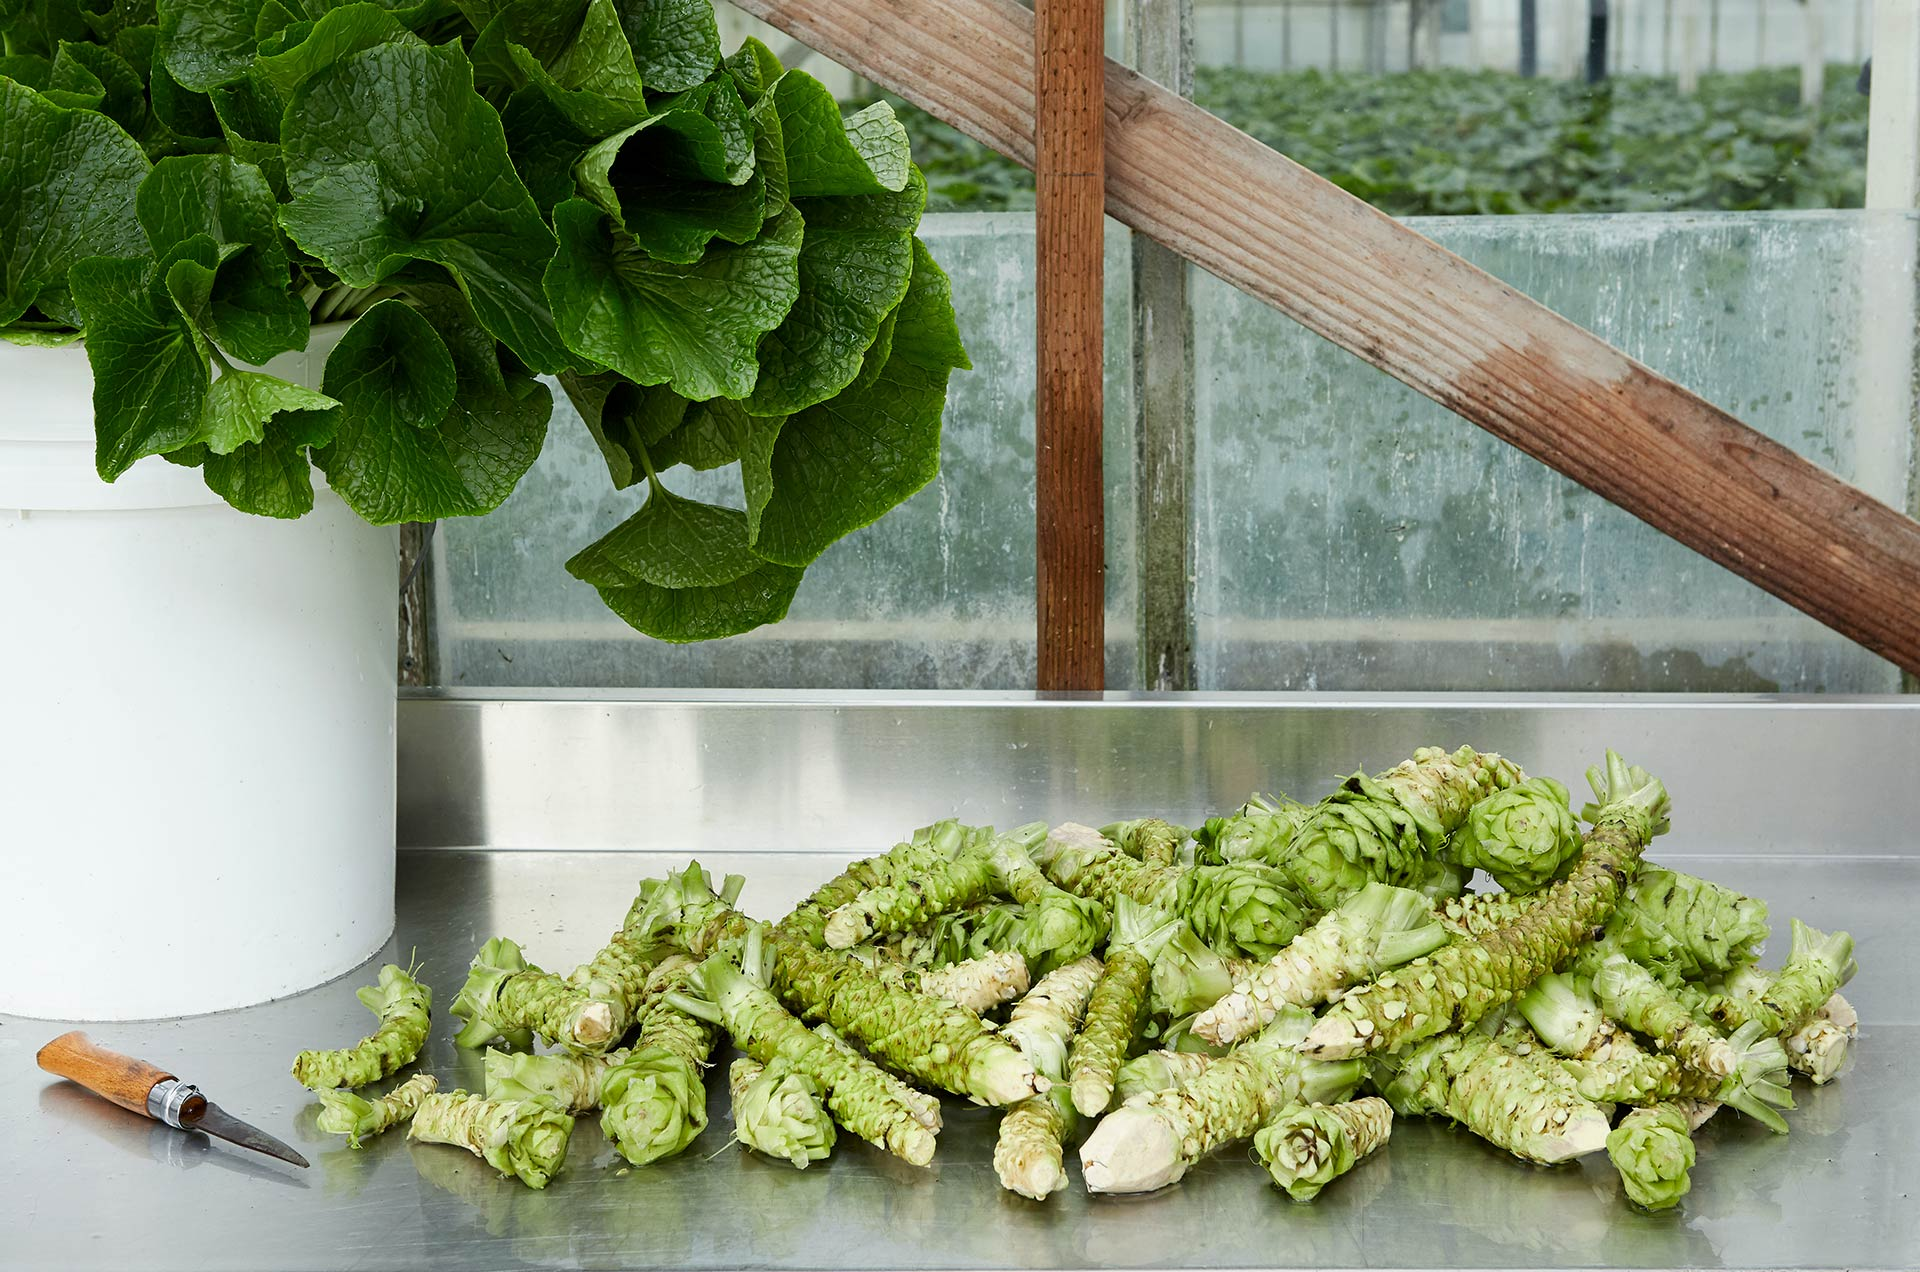 Fresh, Authentic Wasabi from Half Moon Bay Wasabi Company